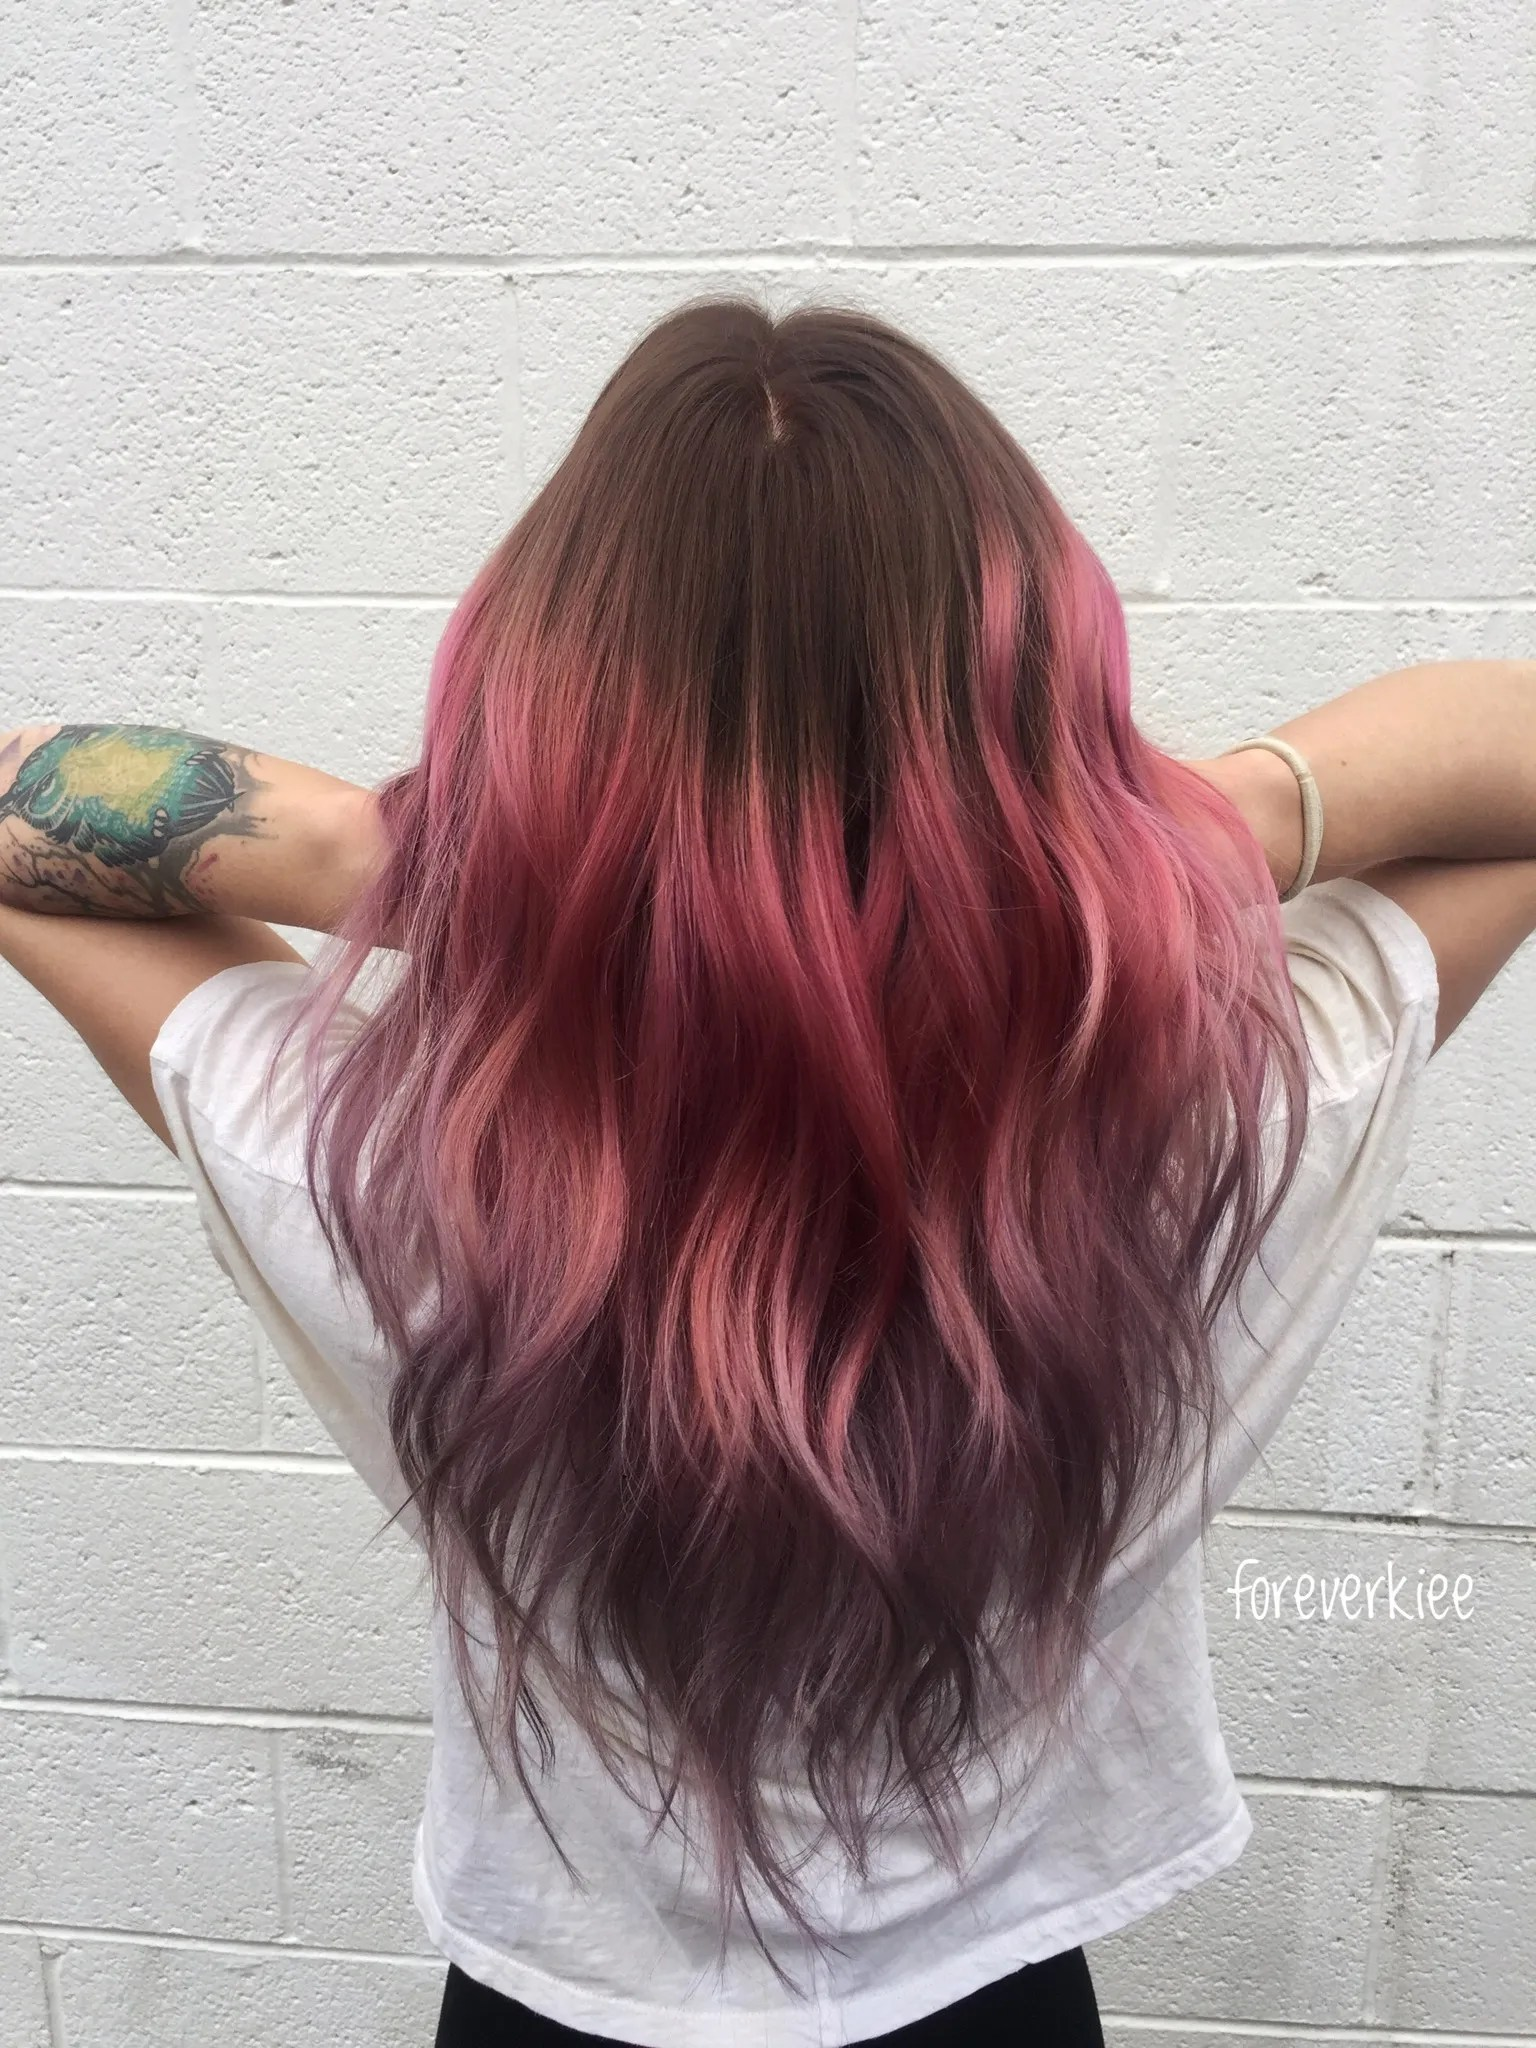 The Key To Perfect Pink Hair Color Don T Bleach The Roots